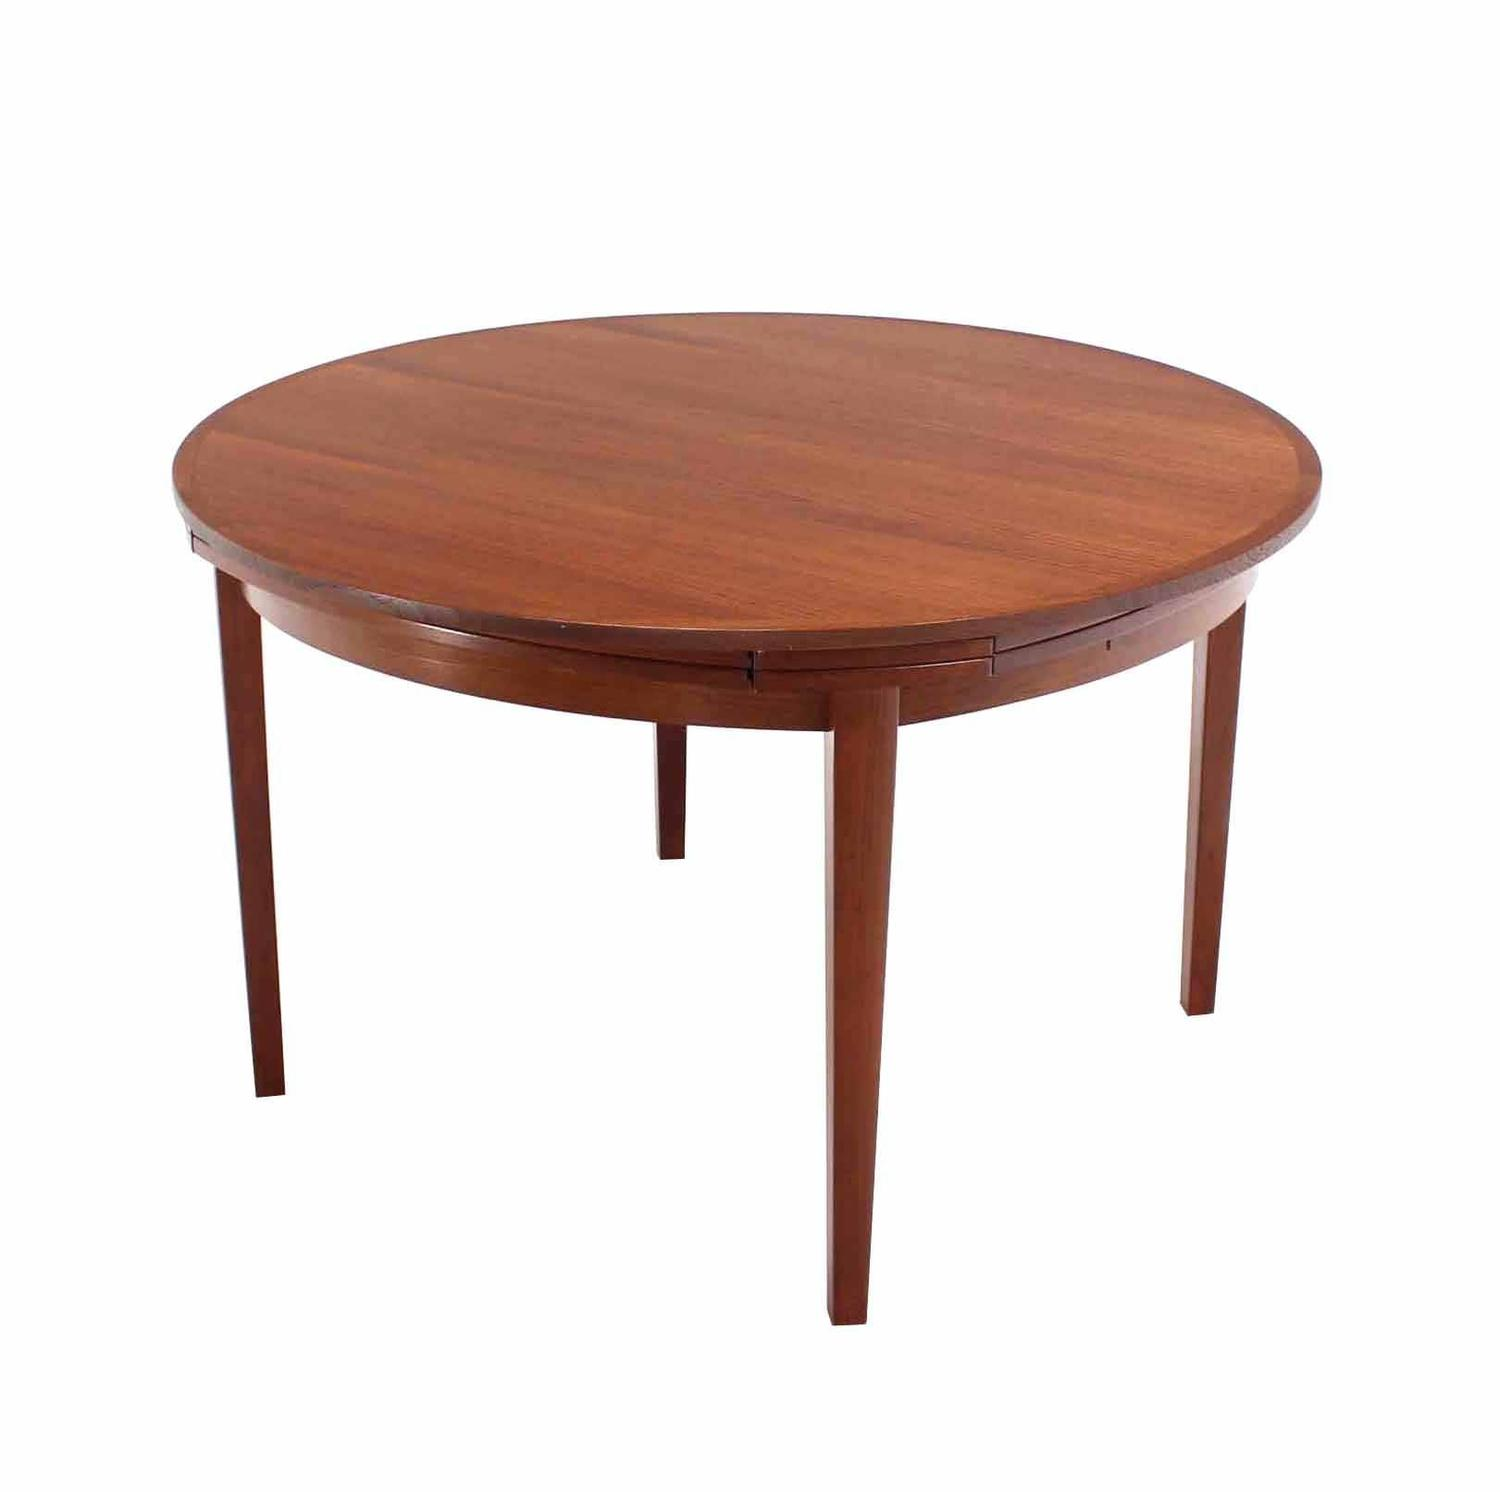 Rare danish modern teak round expandable top dining table for Biggest dining table